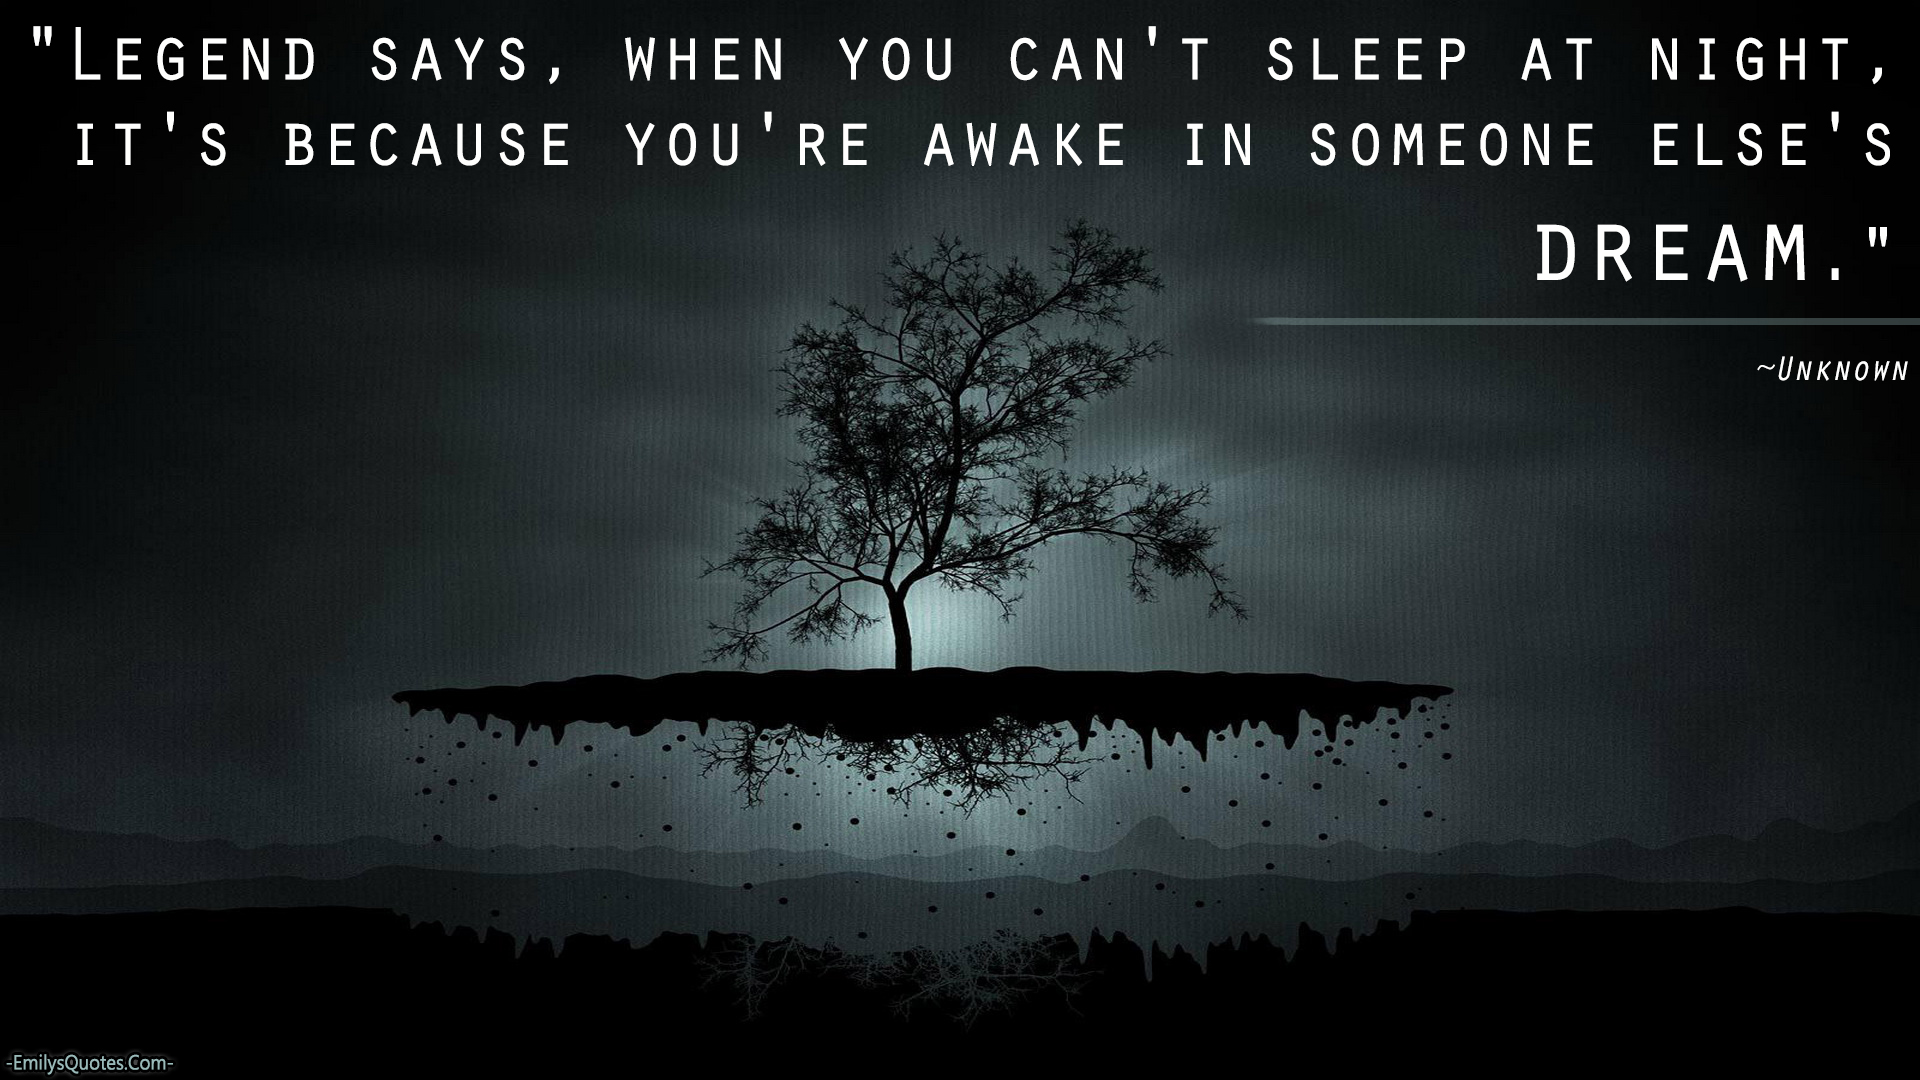 Quotes About Not Sleeping Amazing Legend Says When You Can't Sleep At Night It's Because You're